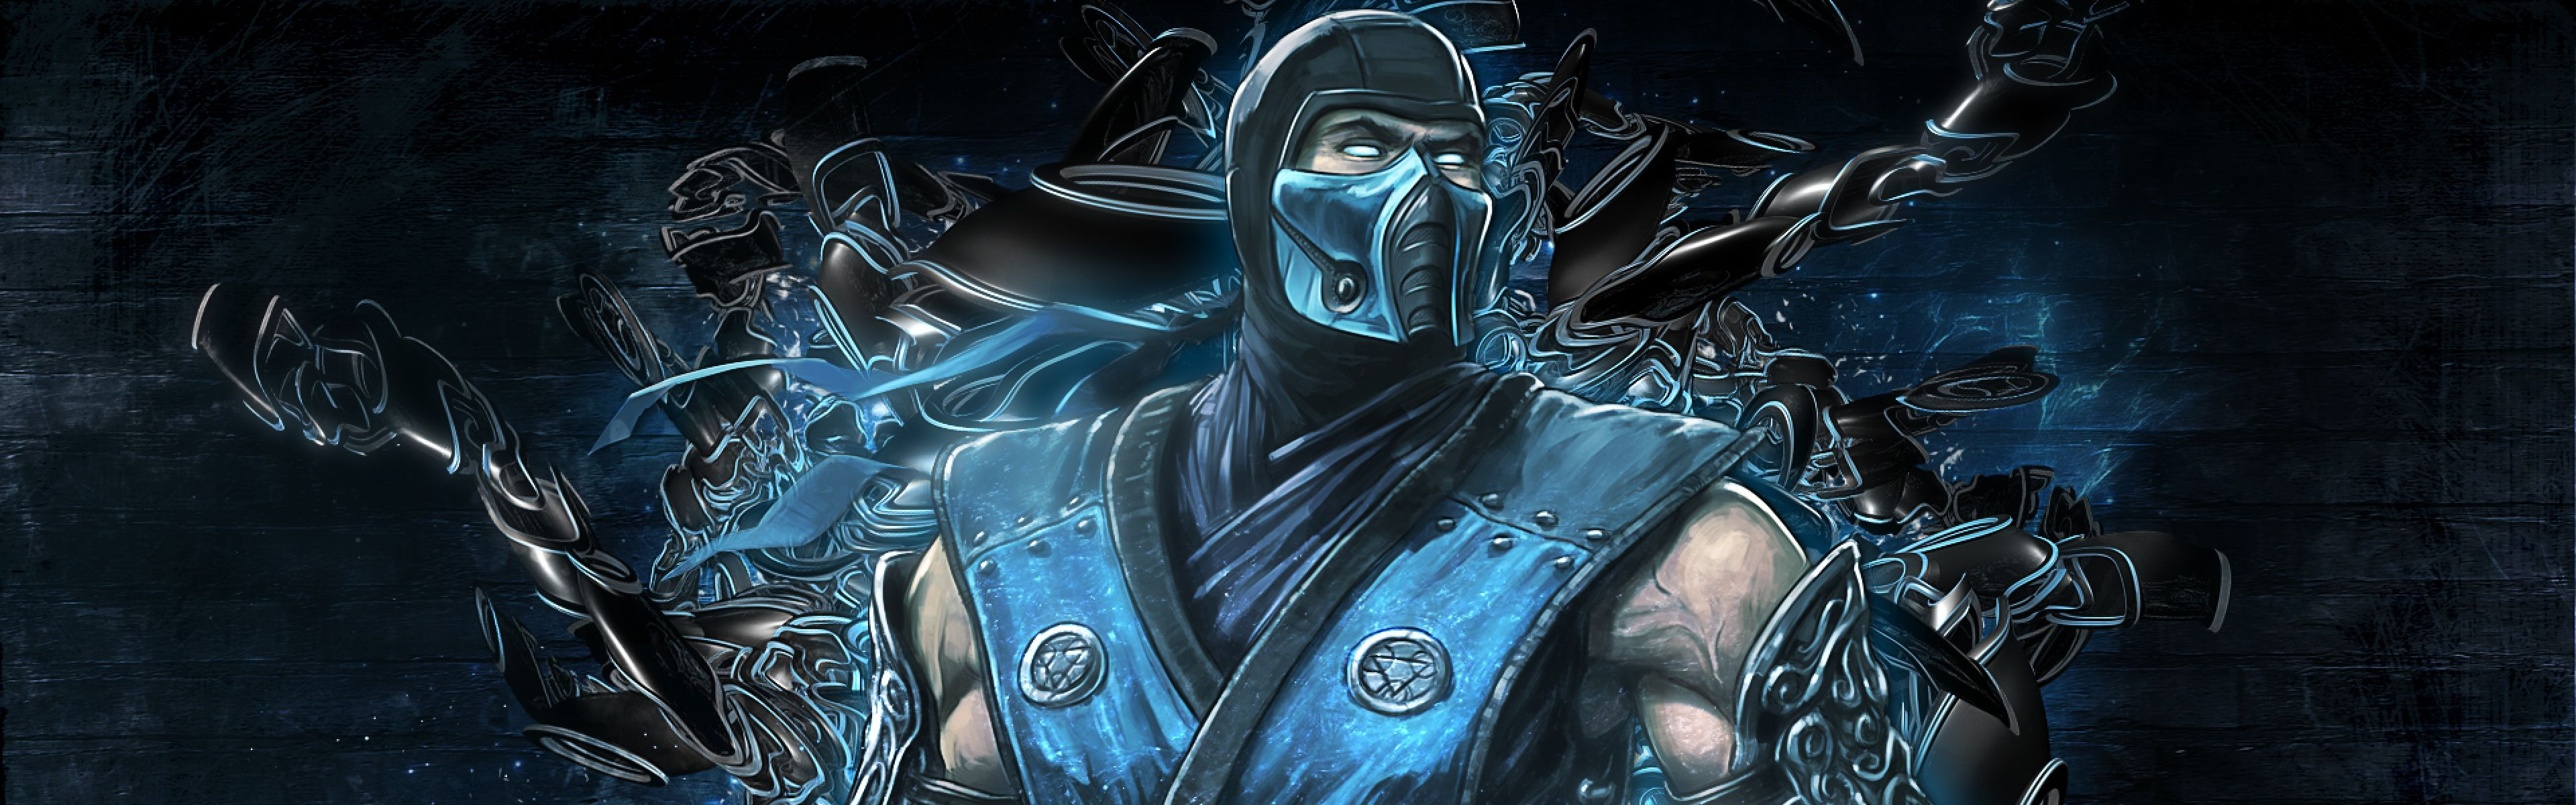 204 Mortal Kombat HD Wallpapers | Backgrounds - Wallpaper Abyss